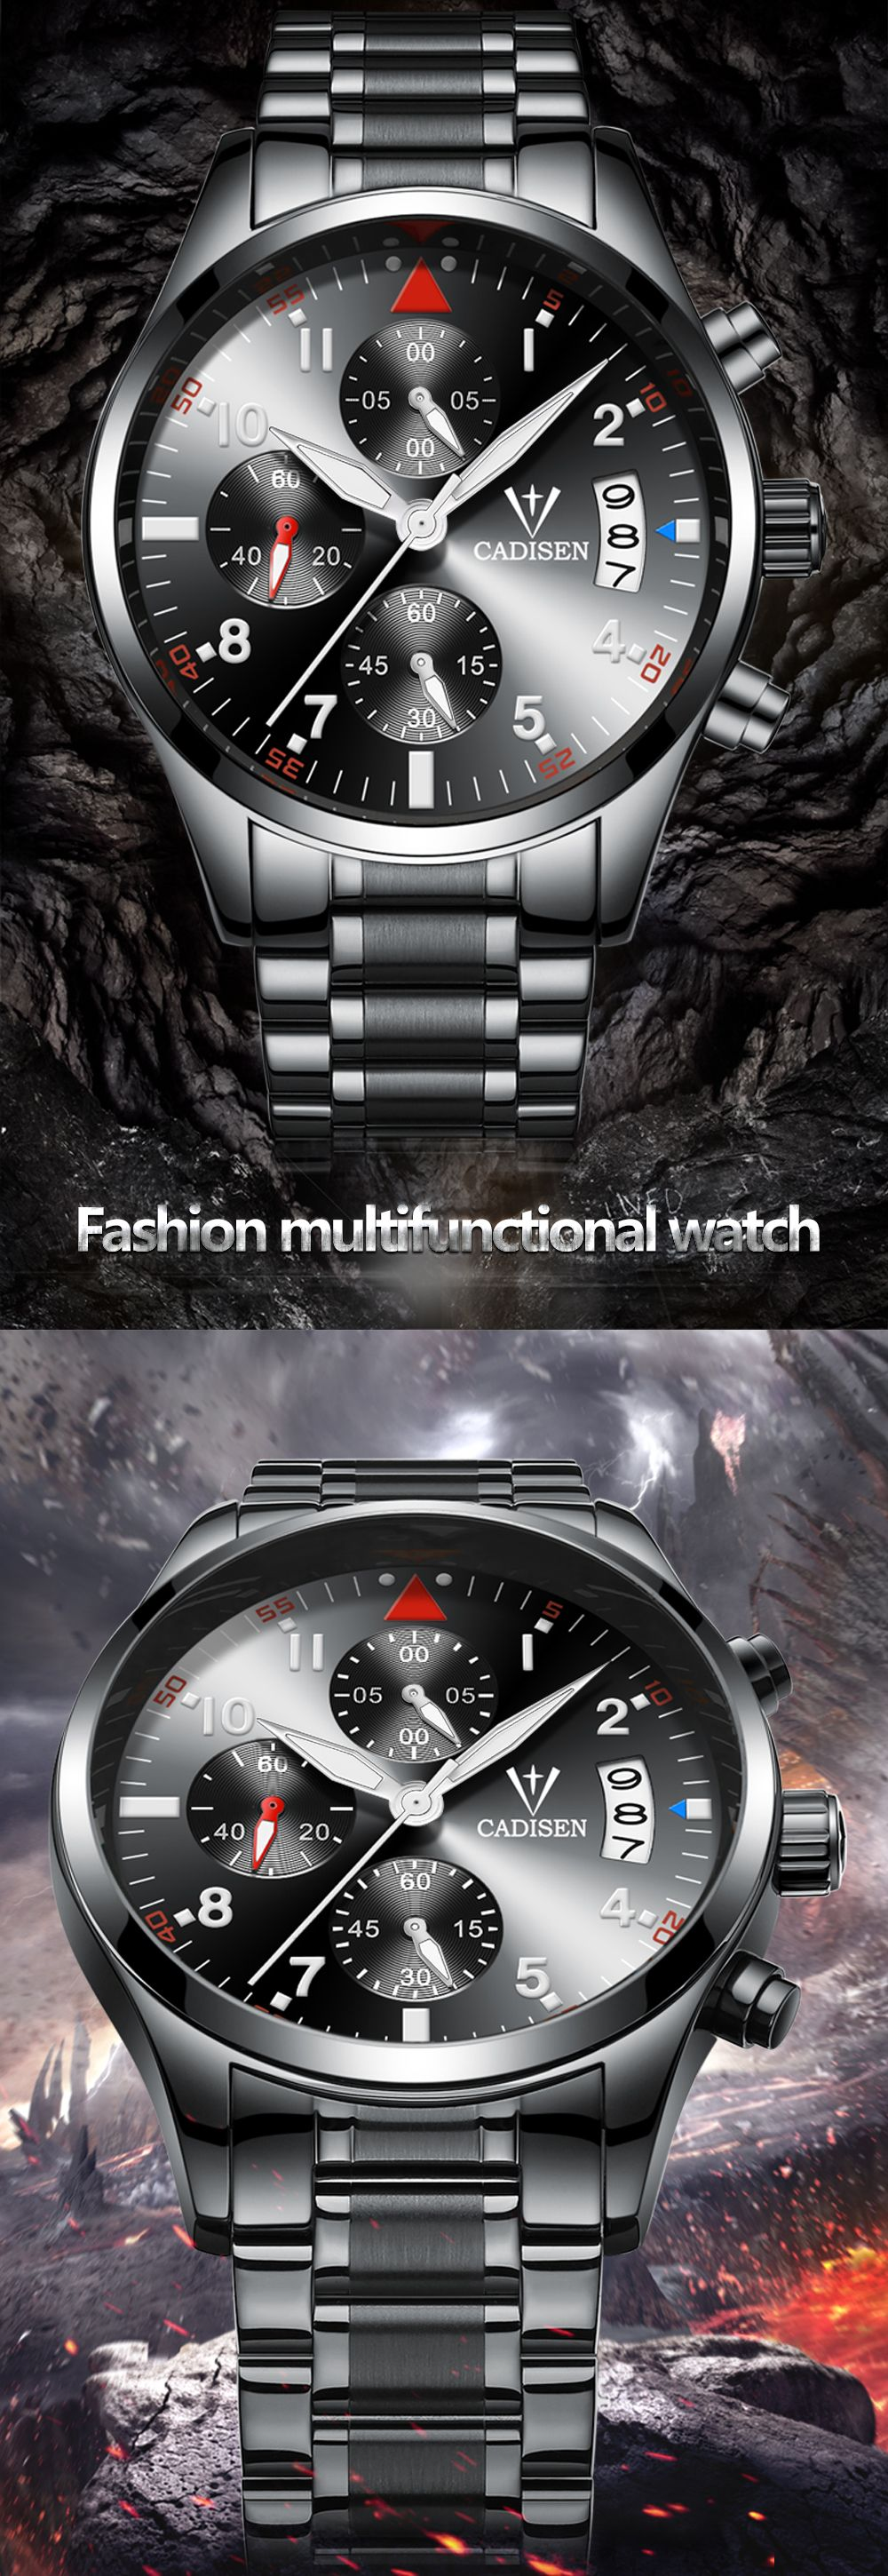 what versus watch thoughts formal dress watches are your work on business truly omegaaway suit